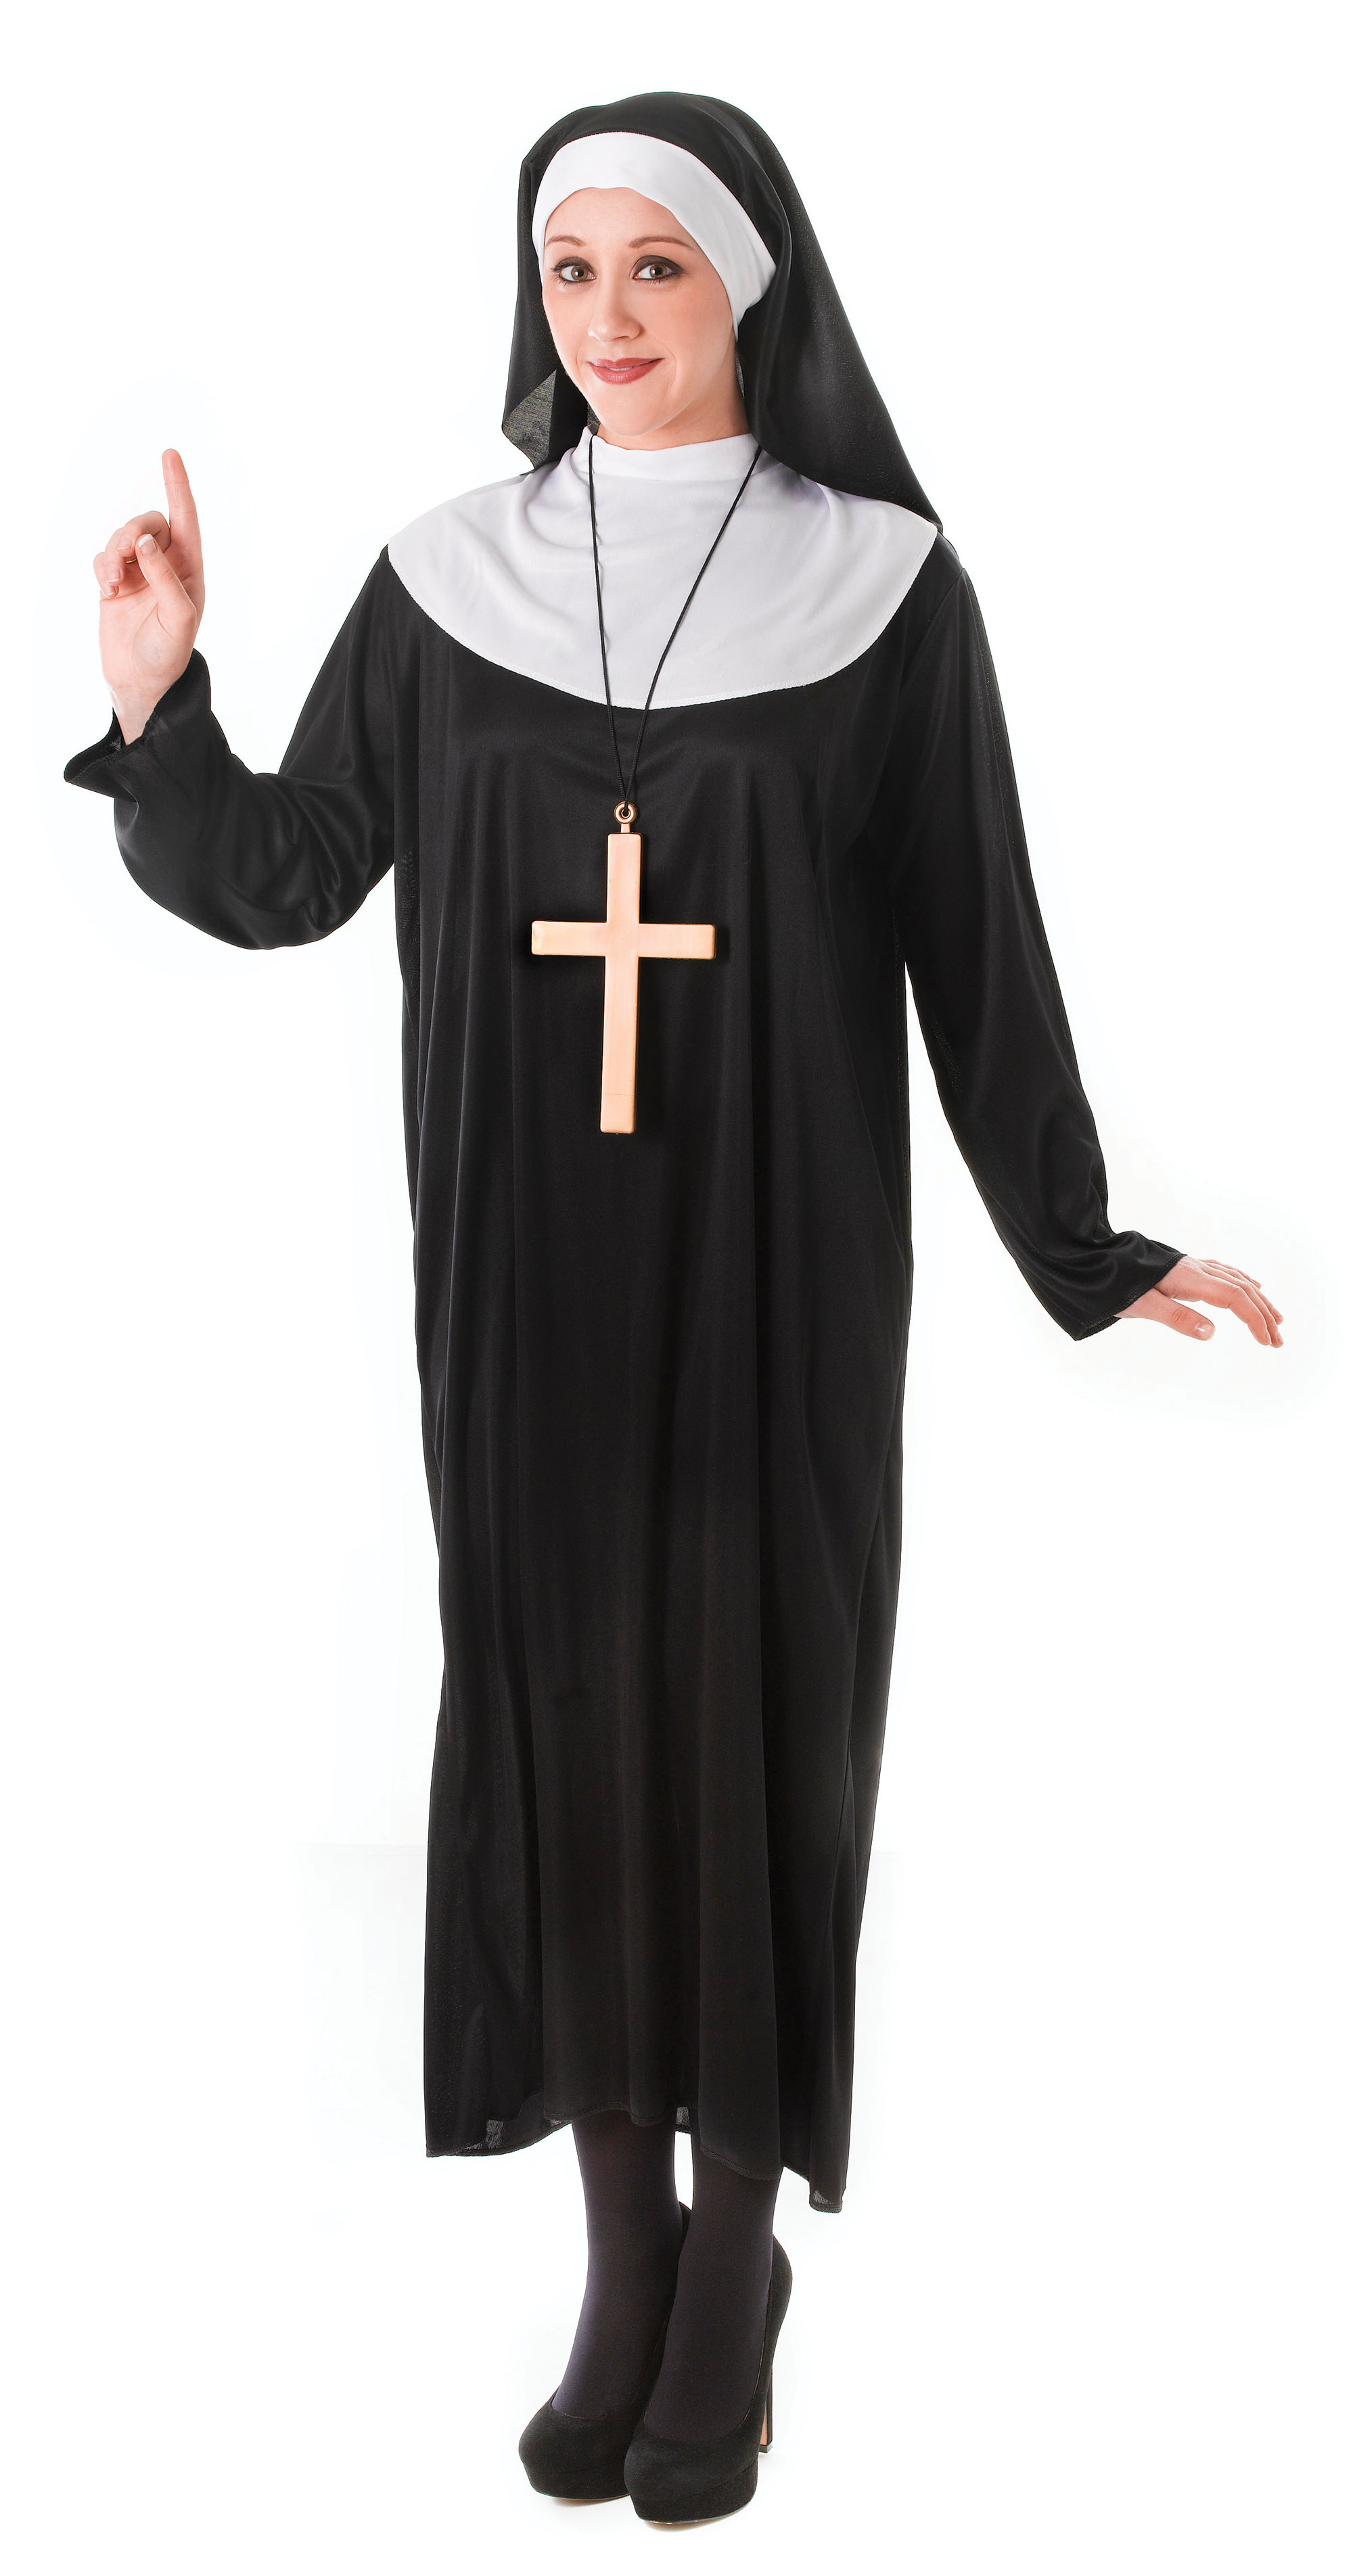 Adult size Nuns Costume